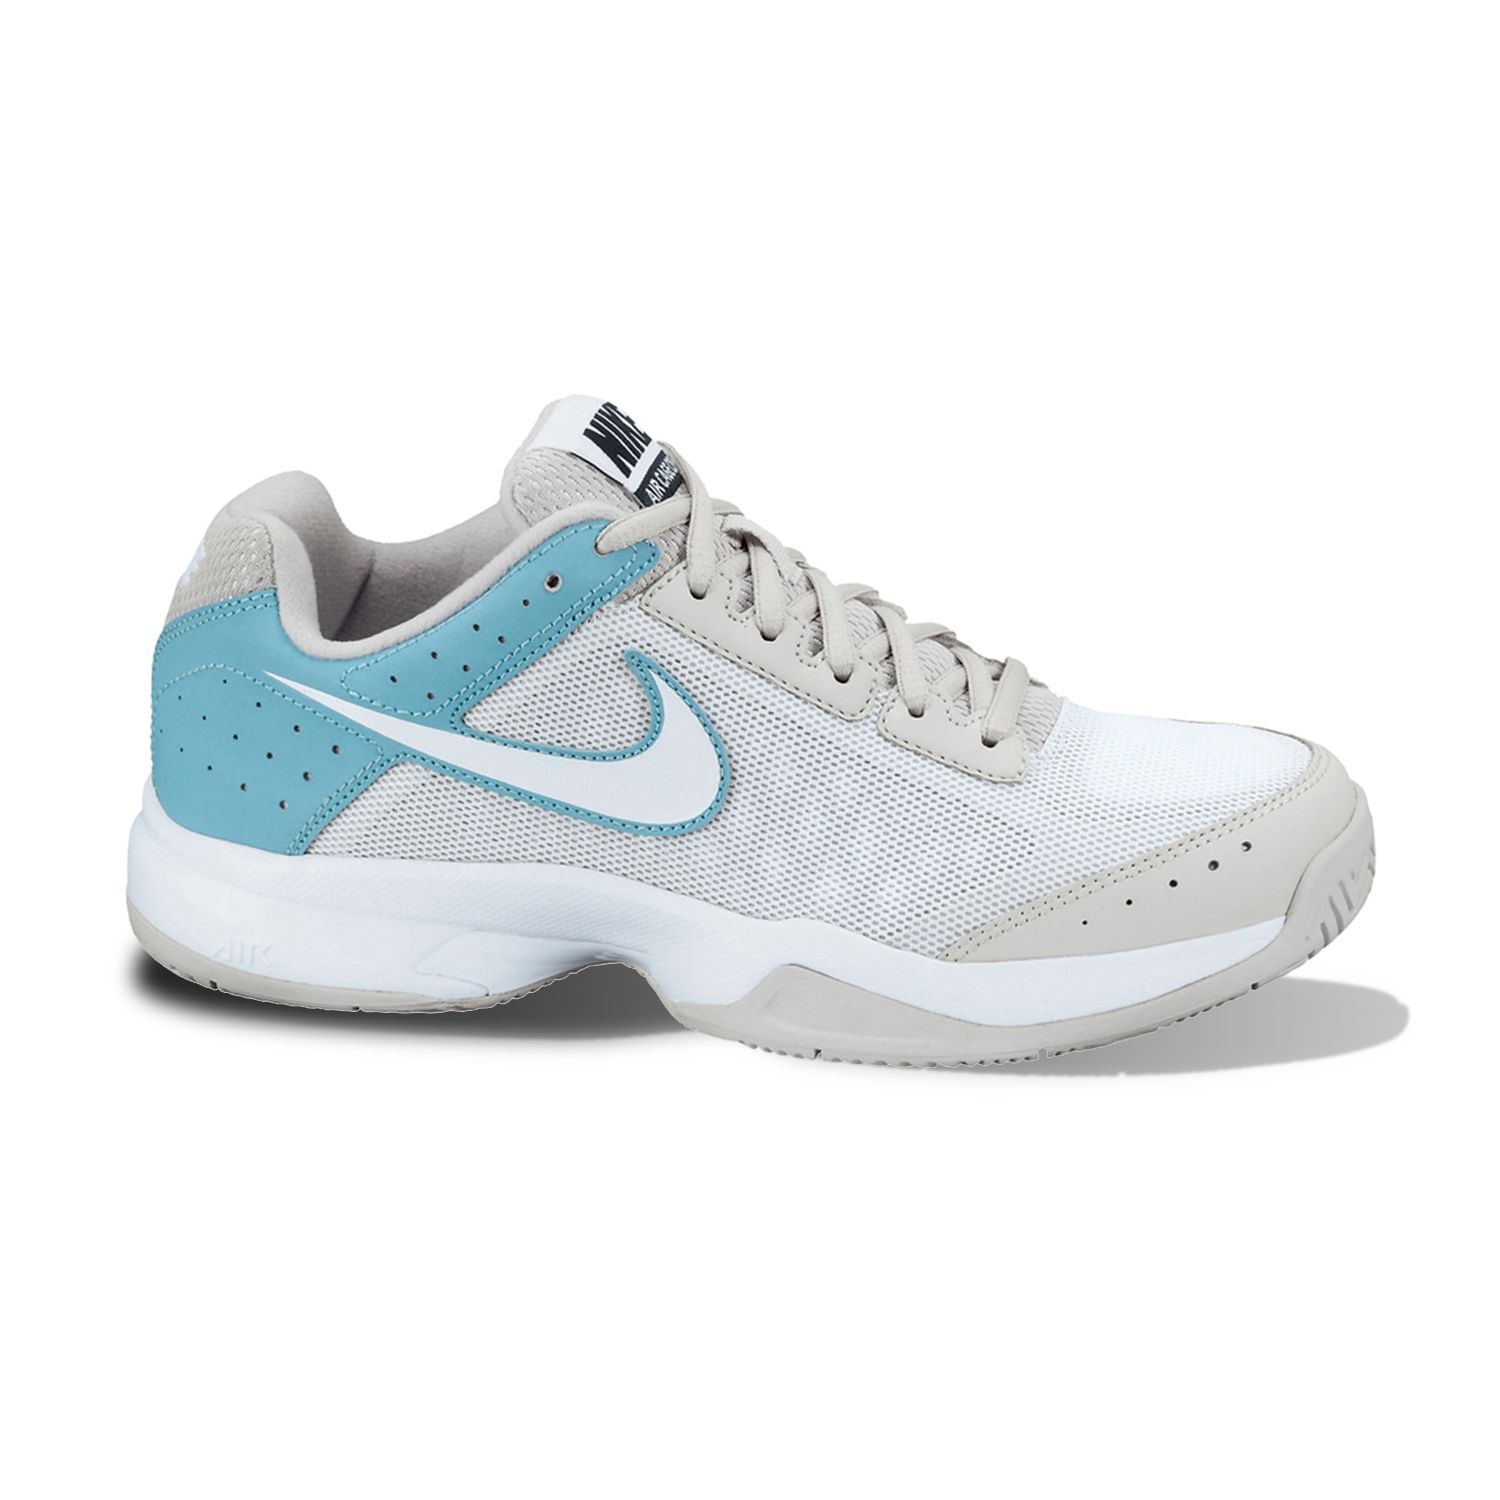 Nike Black Air Cage Court Tennis Shoes - Women